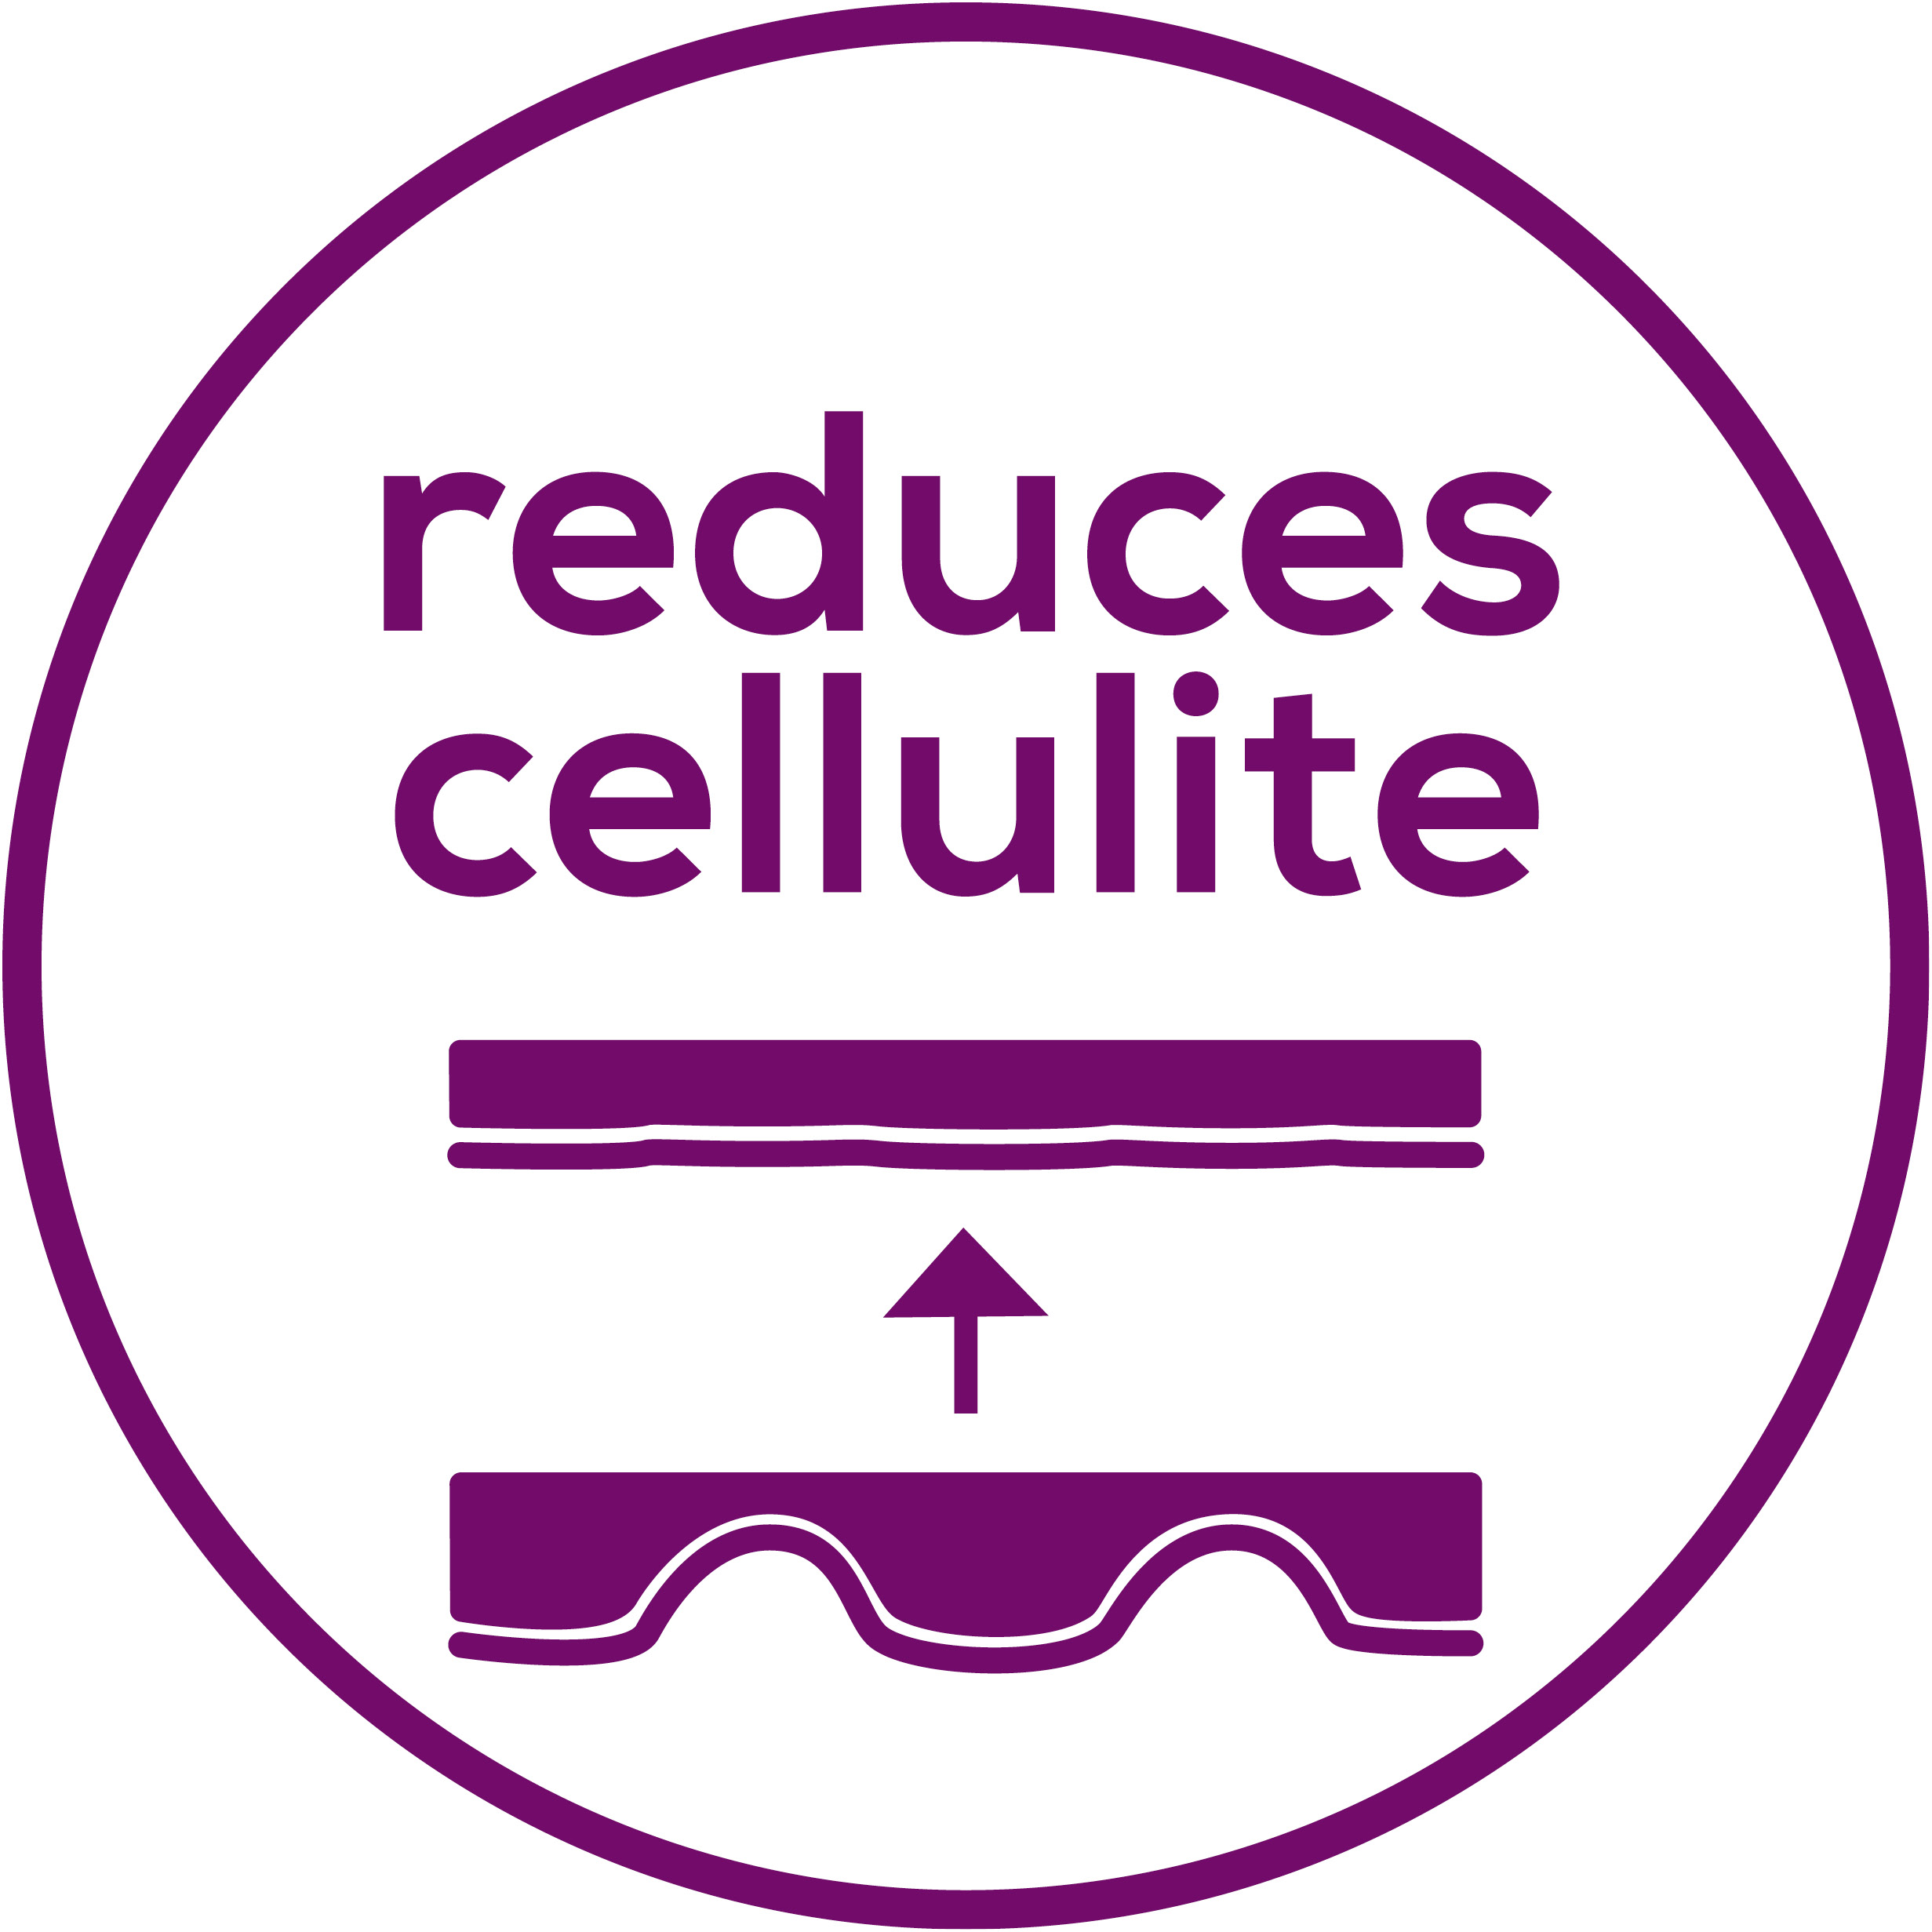 Reduces cellulite Dimples are less visible